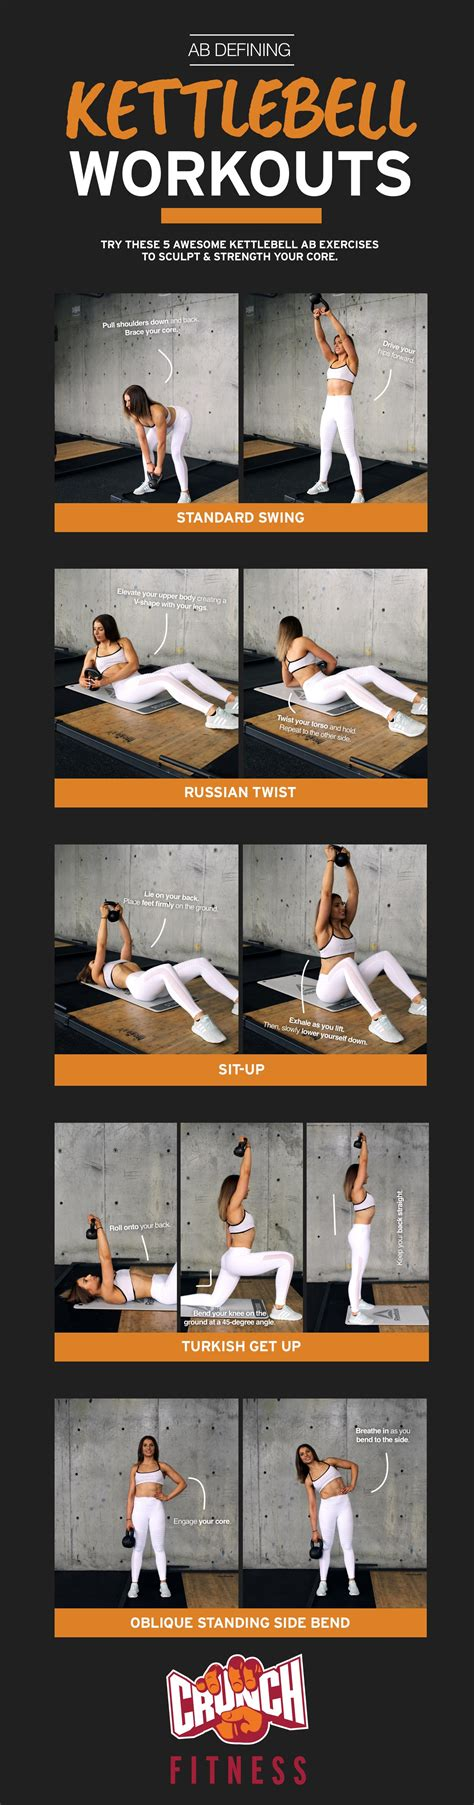 ab exercises kettlebell core crunch awesome fitness strengthen session friendly started touch staff members